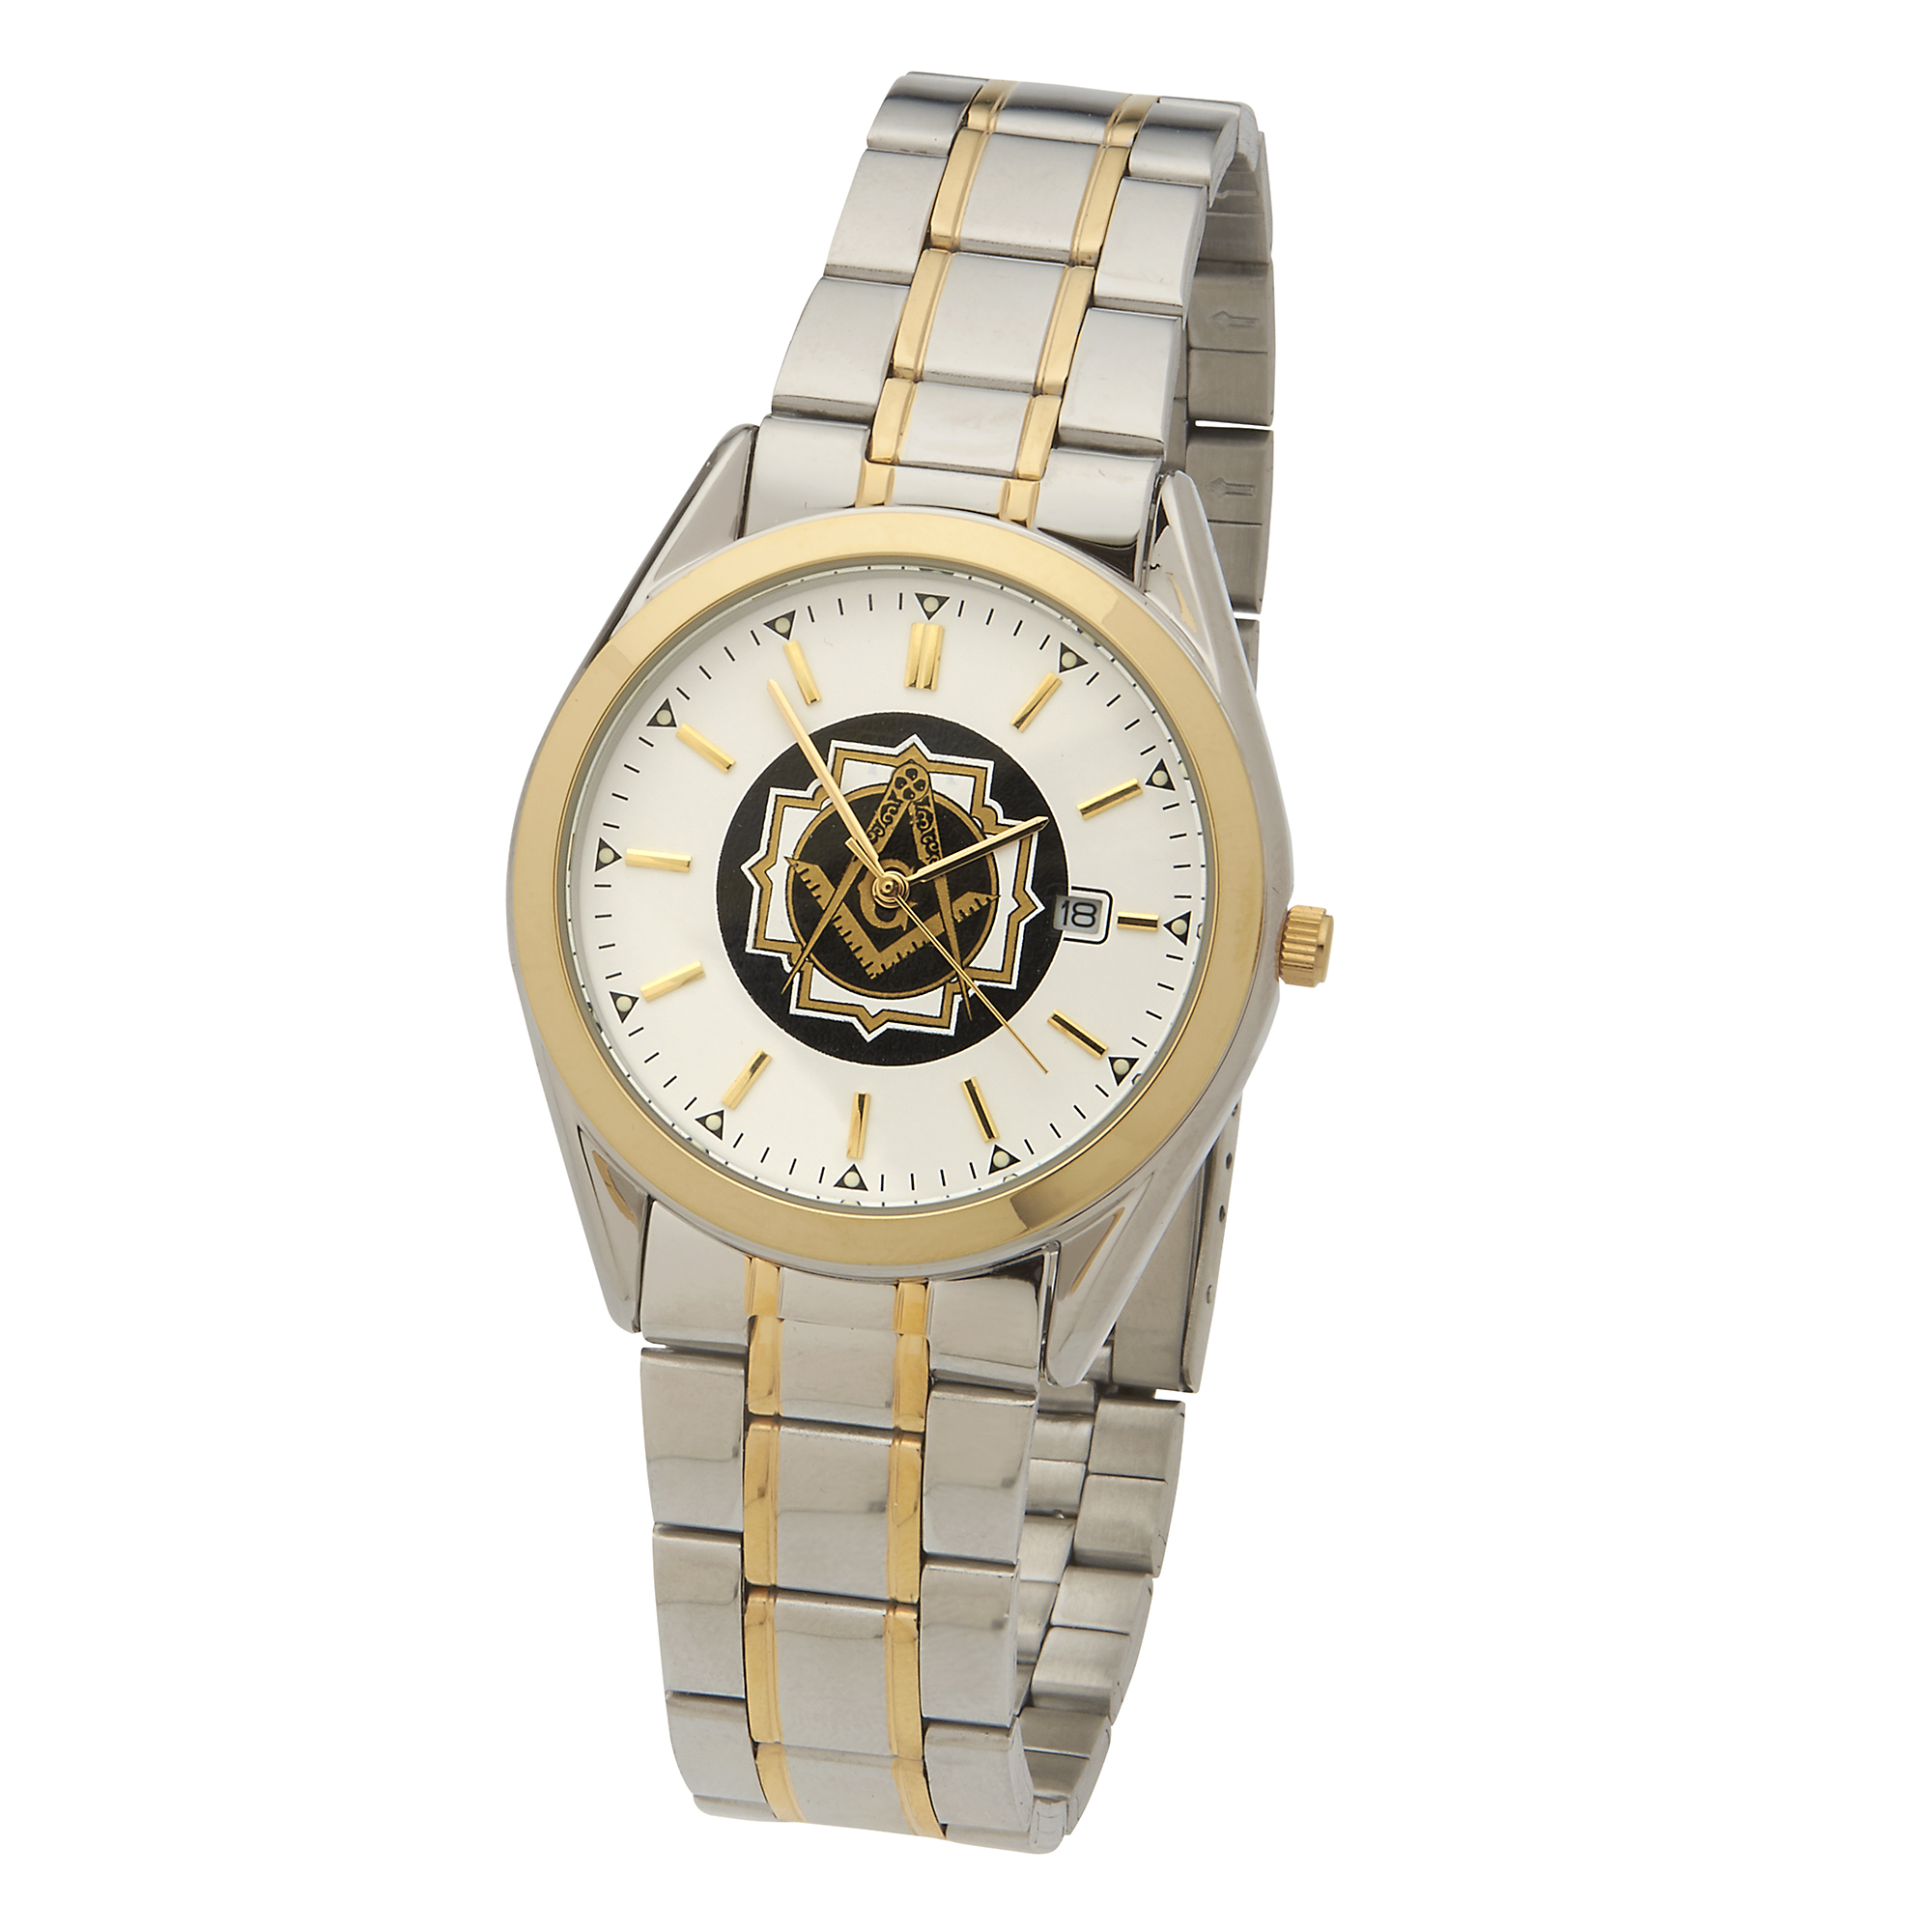 Masonic Square & Compasses TFX Watch - Two Tone Bracelet